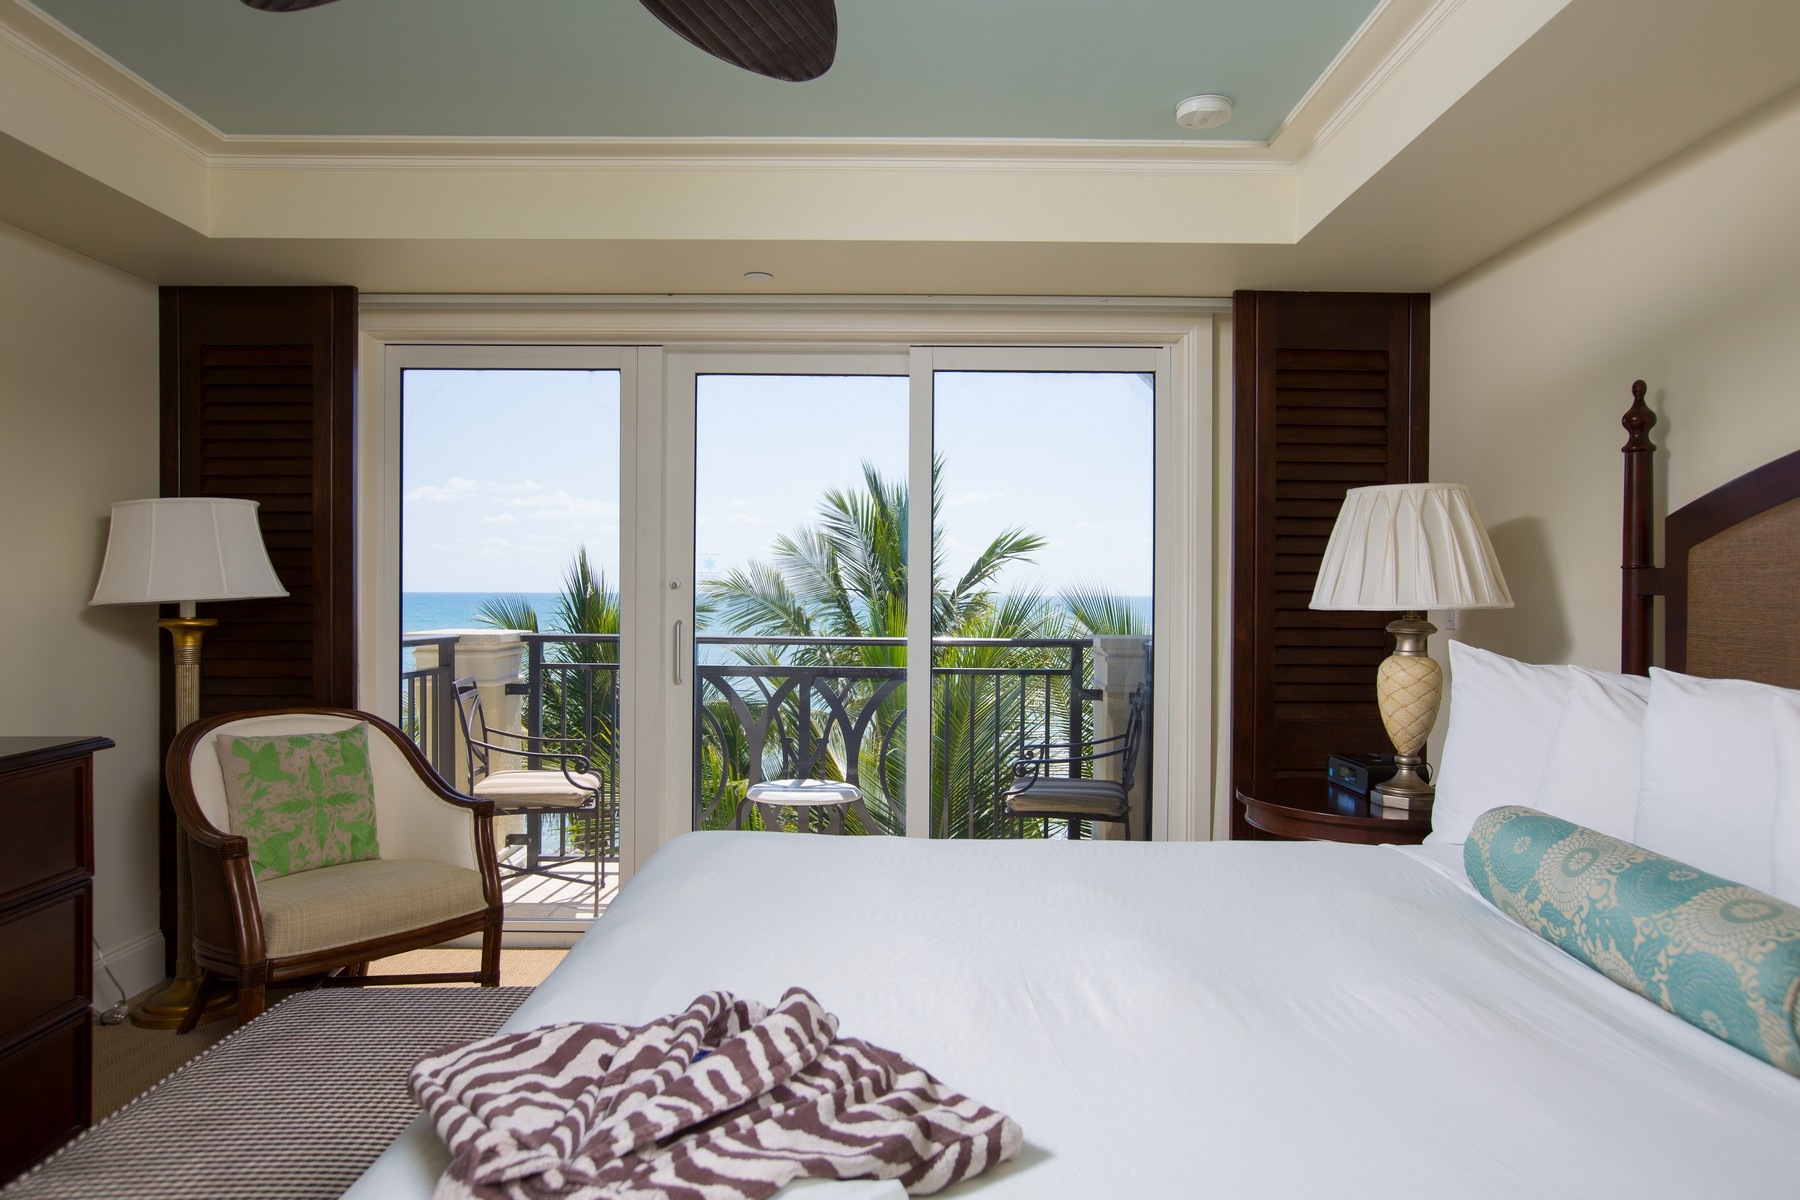 Additional photo for property listing at Vero Beach Condo Hotel Penthouse 3500 Ocean Drive #423 Vero Beach, Florida 32963 United States